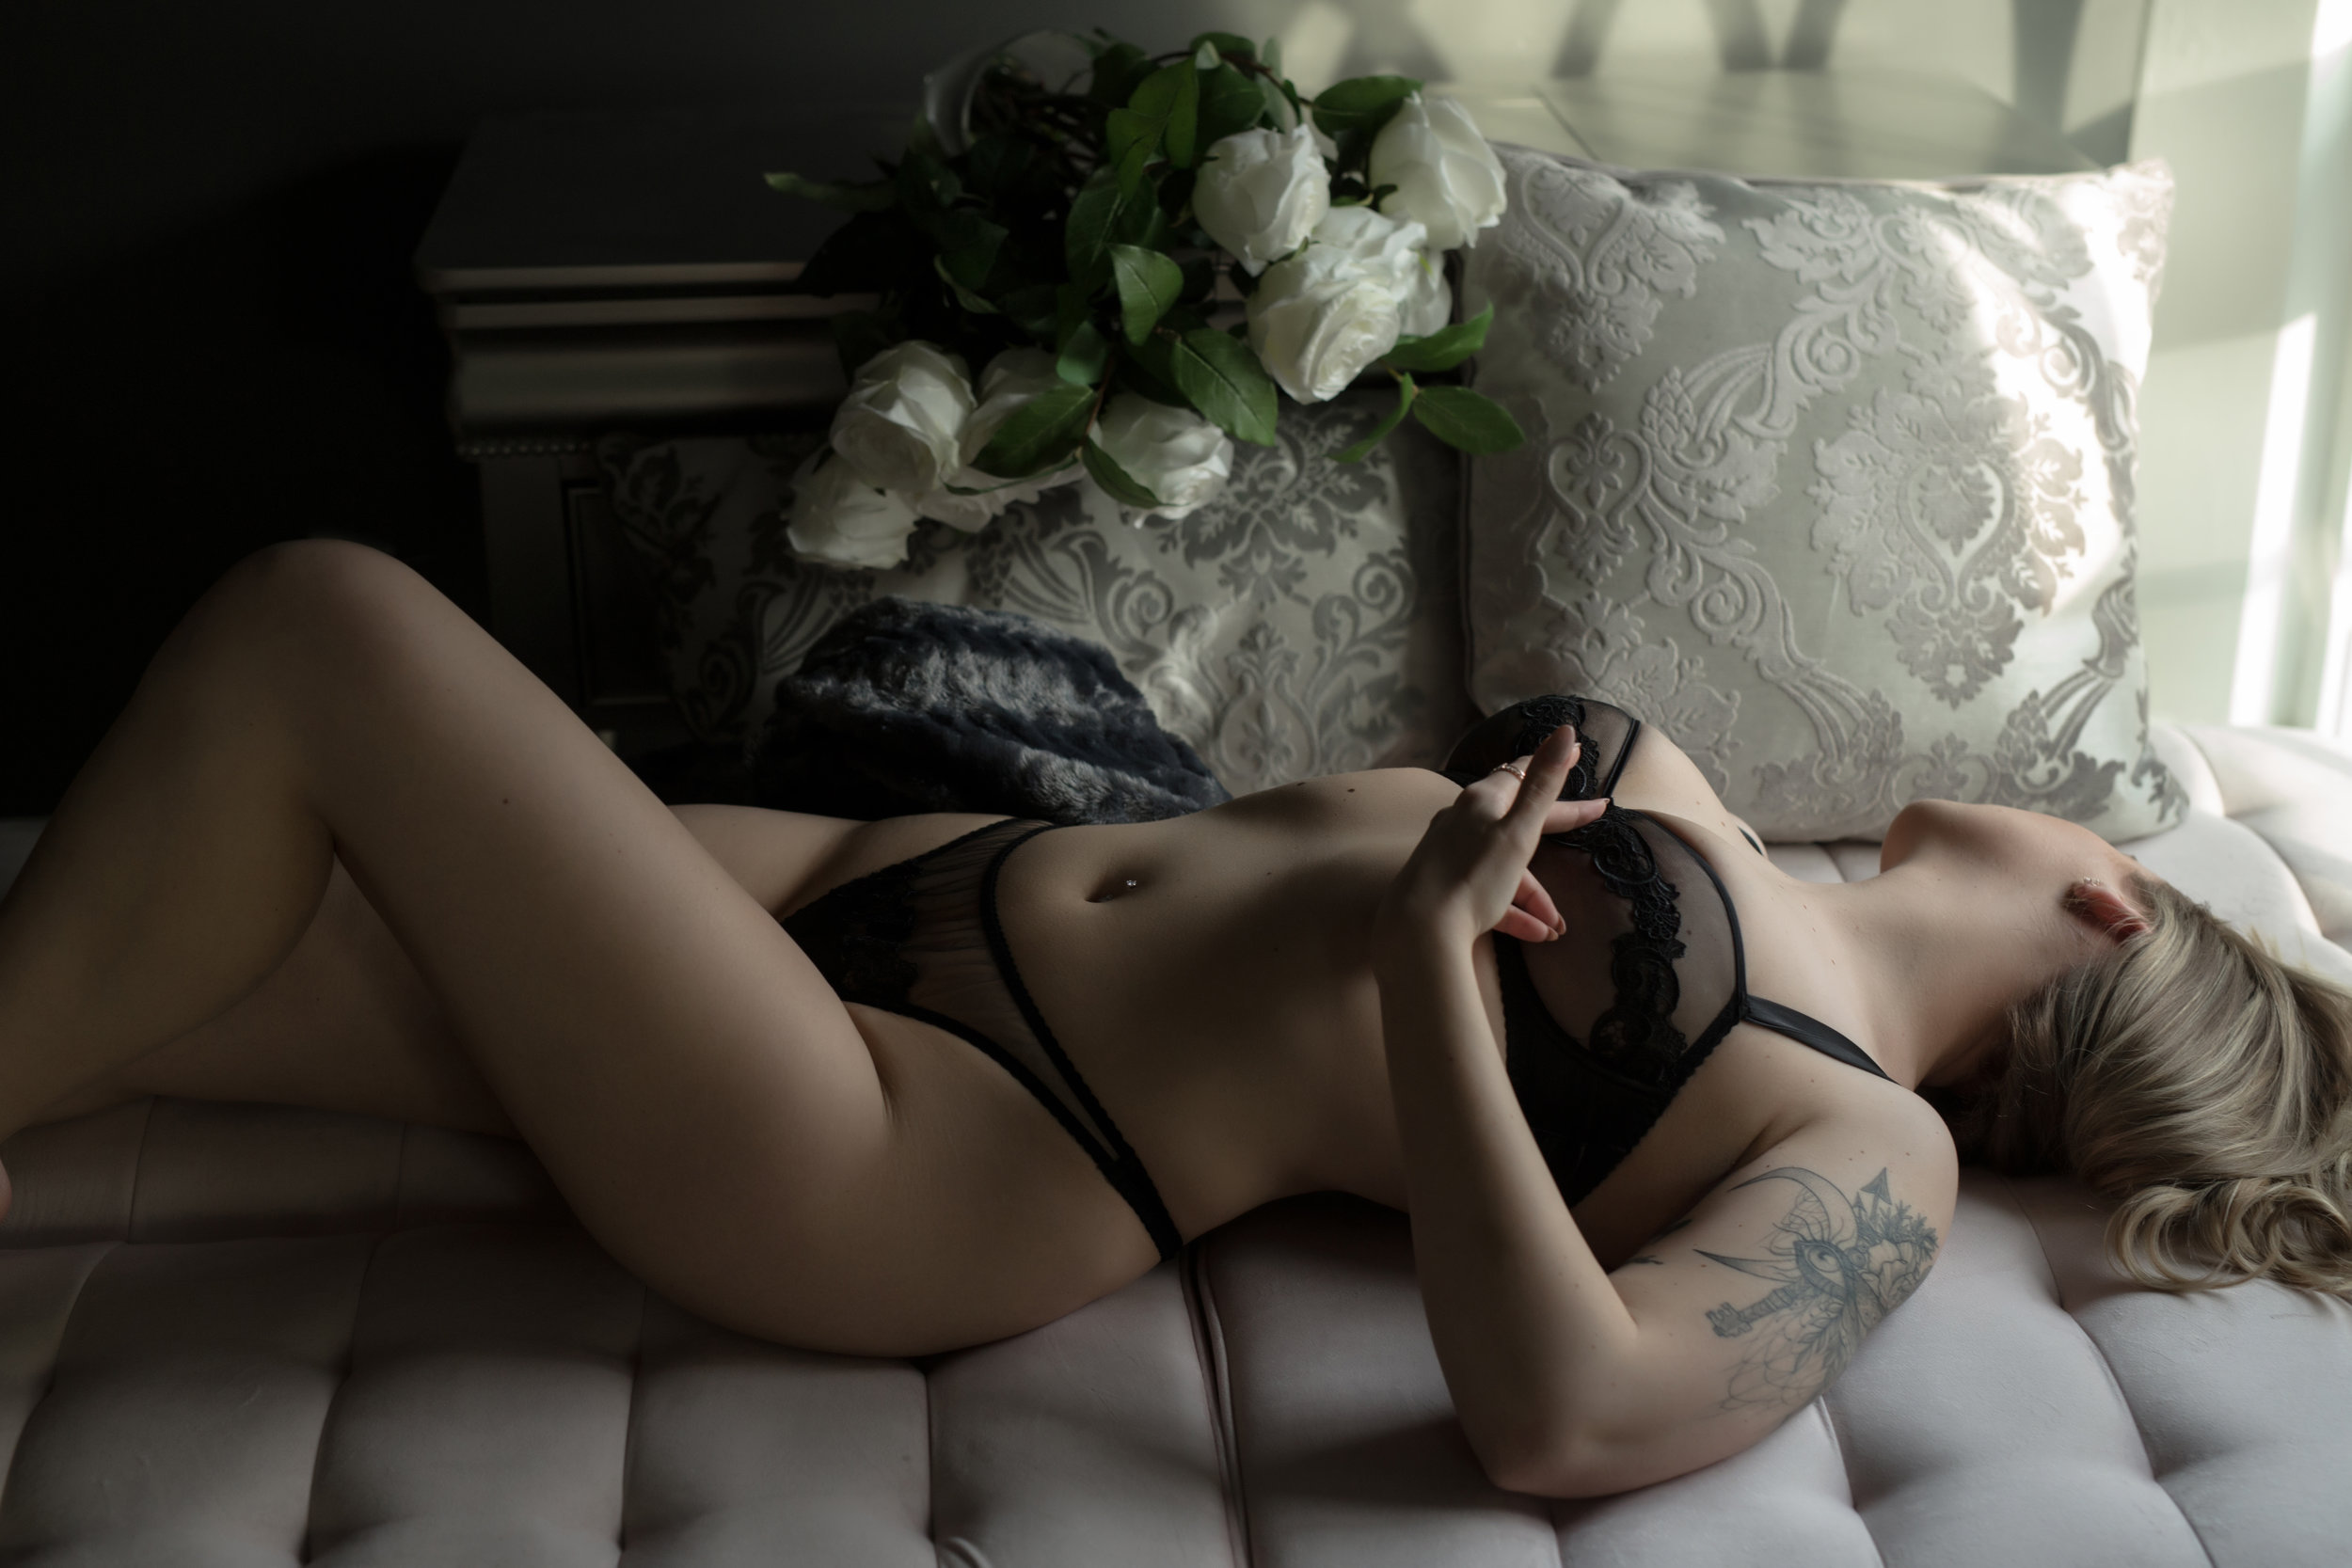 (c)2019  Boudoir Photography by Cate Scaglione  |  Life As Fine Art Studio, Red Bank NJ